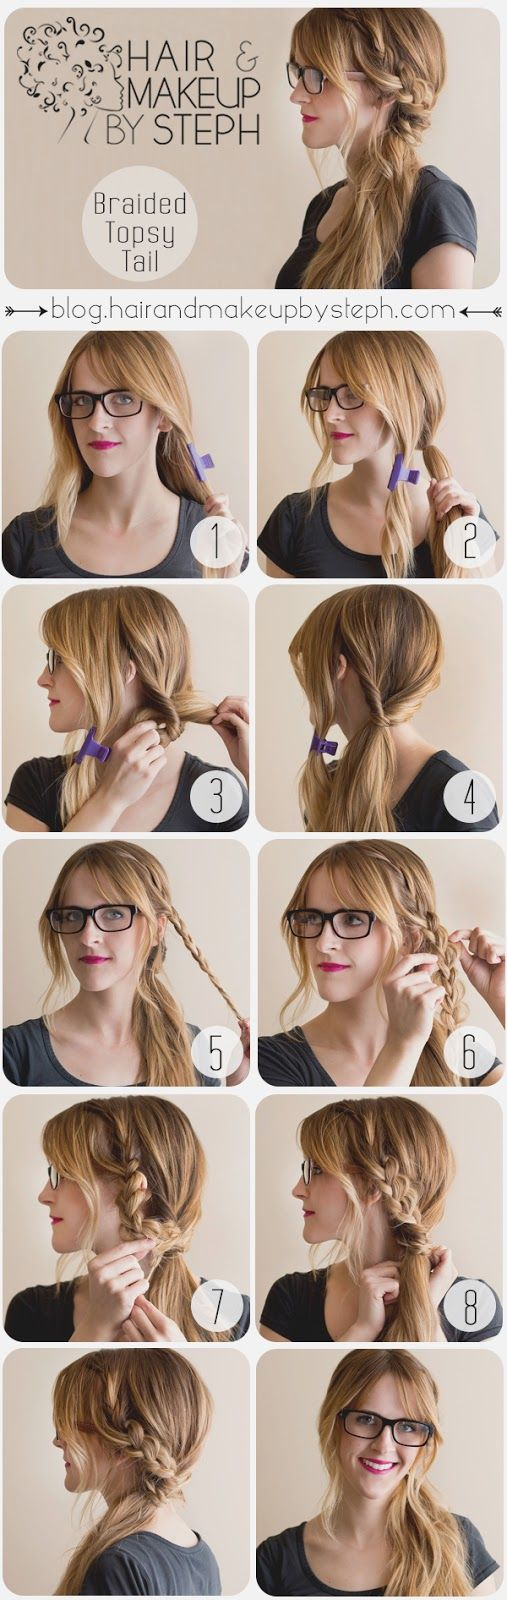 "So Simple and cute! Braided ""Topsy Tail"". Grown-up version of what I used to do when I was a kid!"